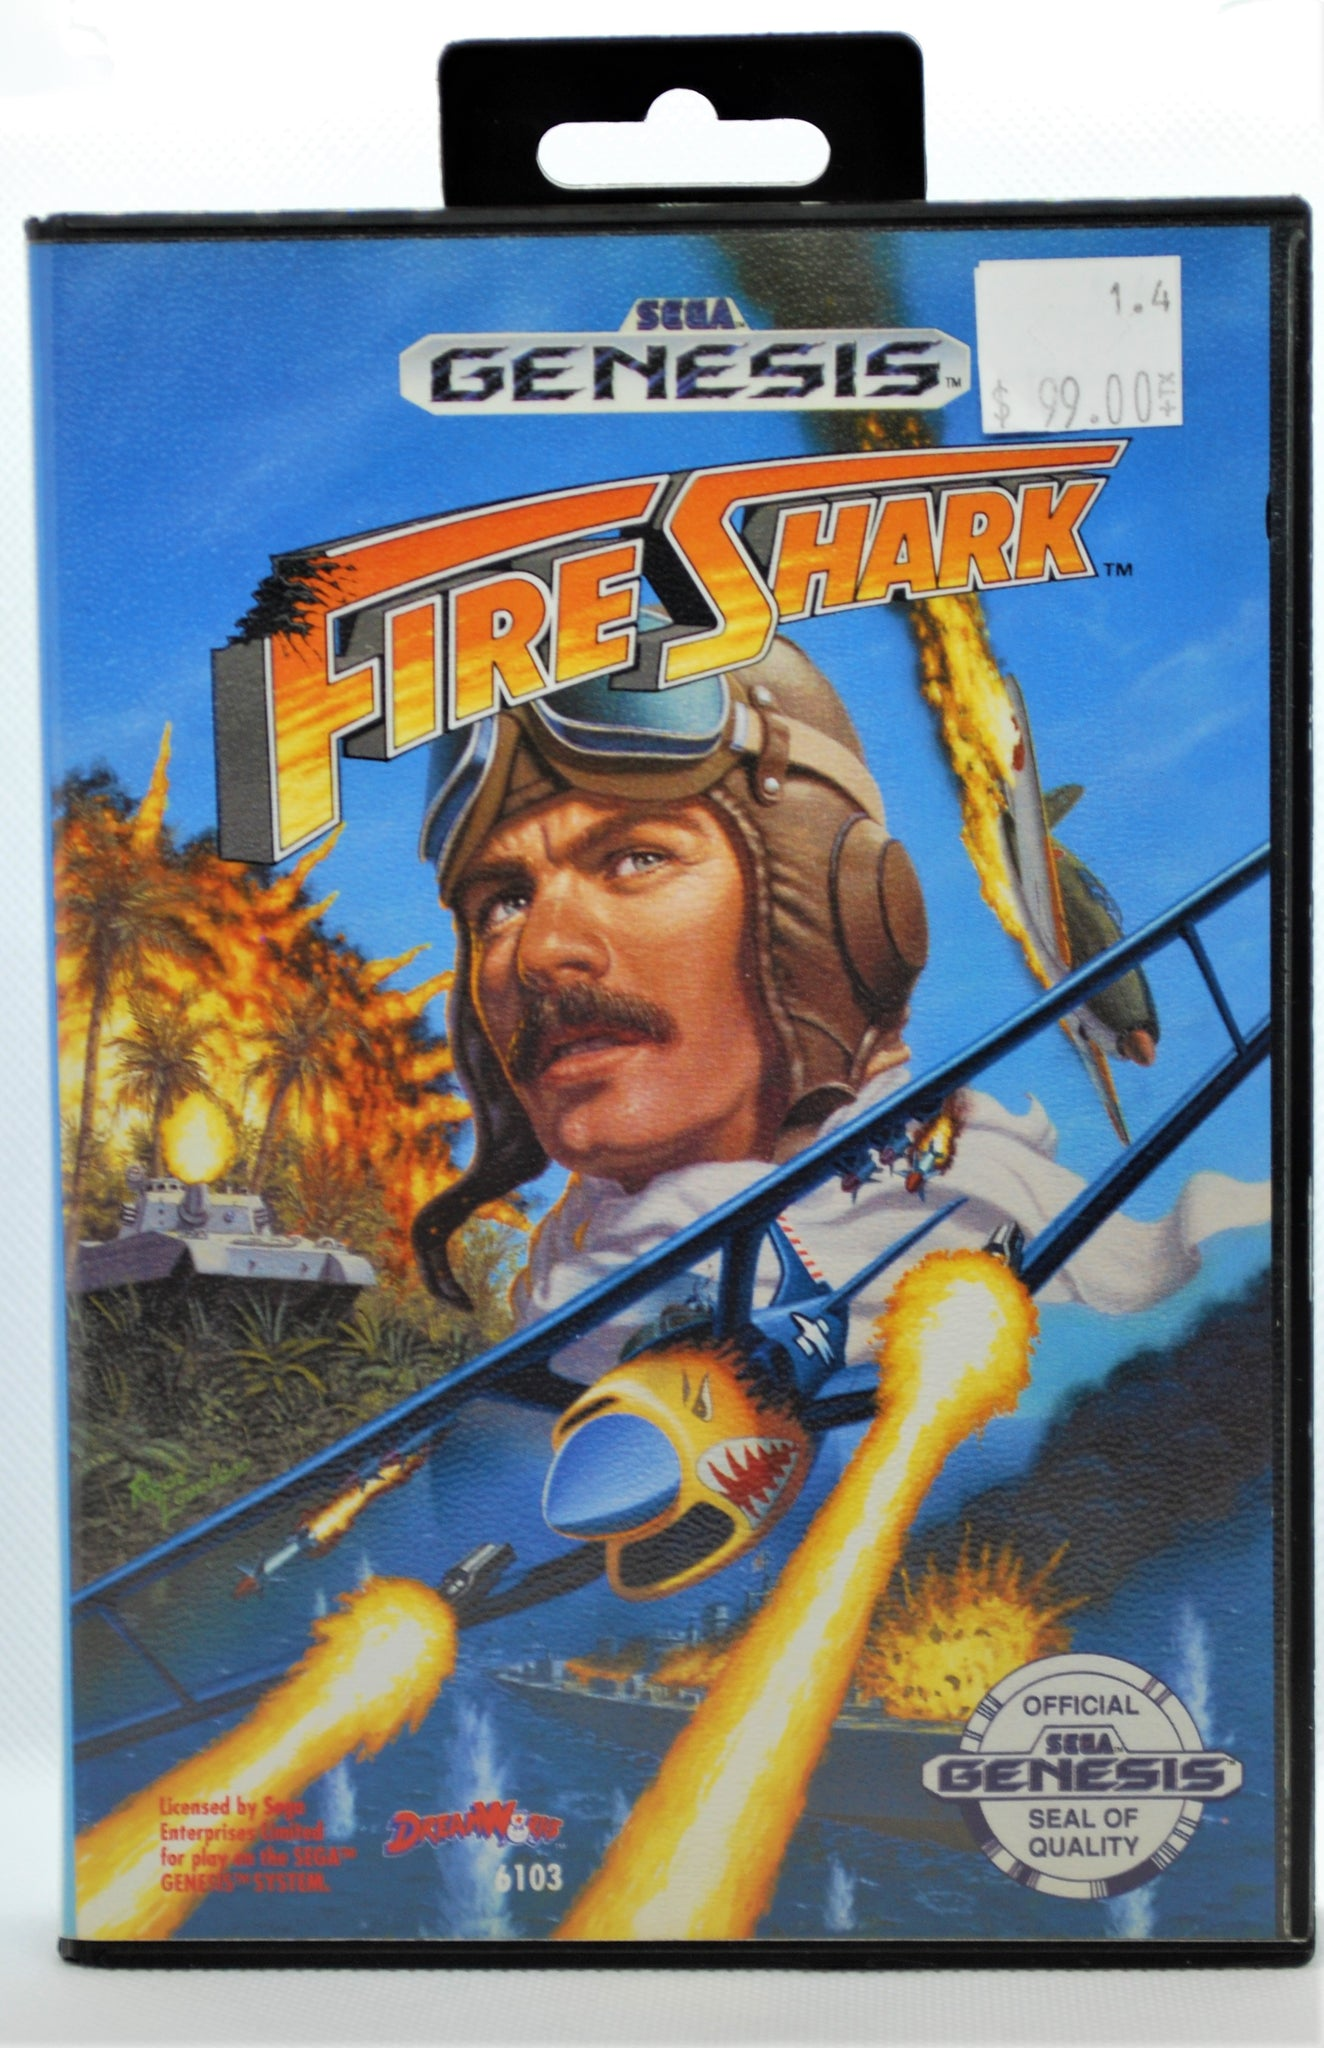 Fire Shark - CIB